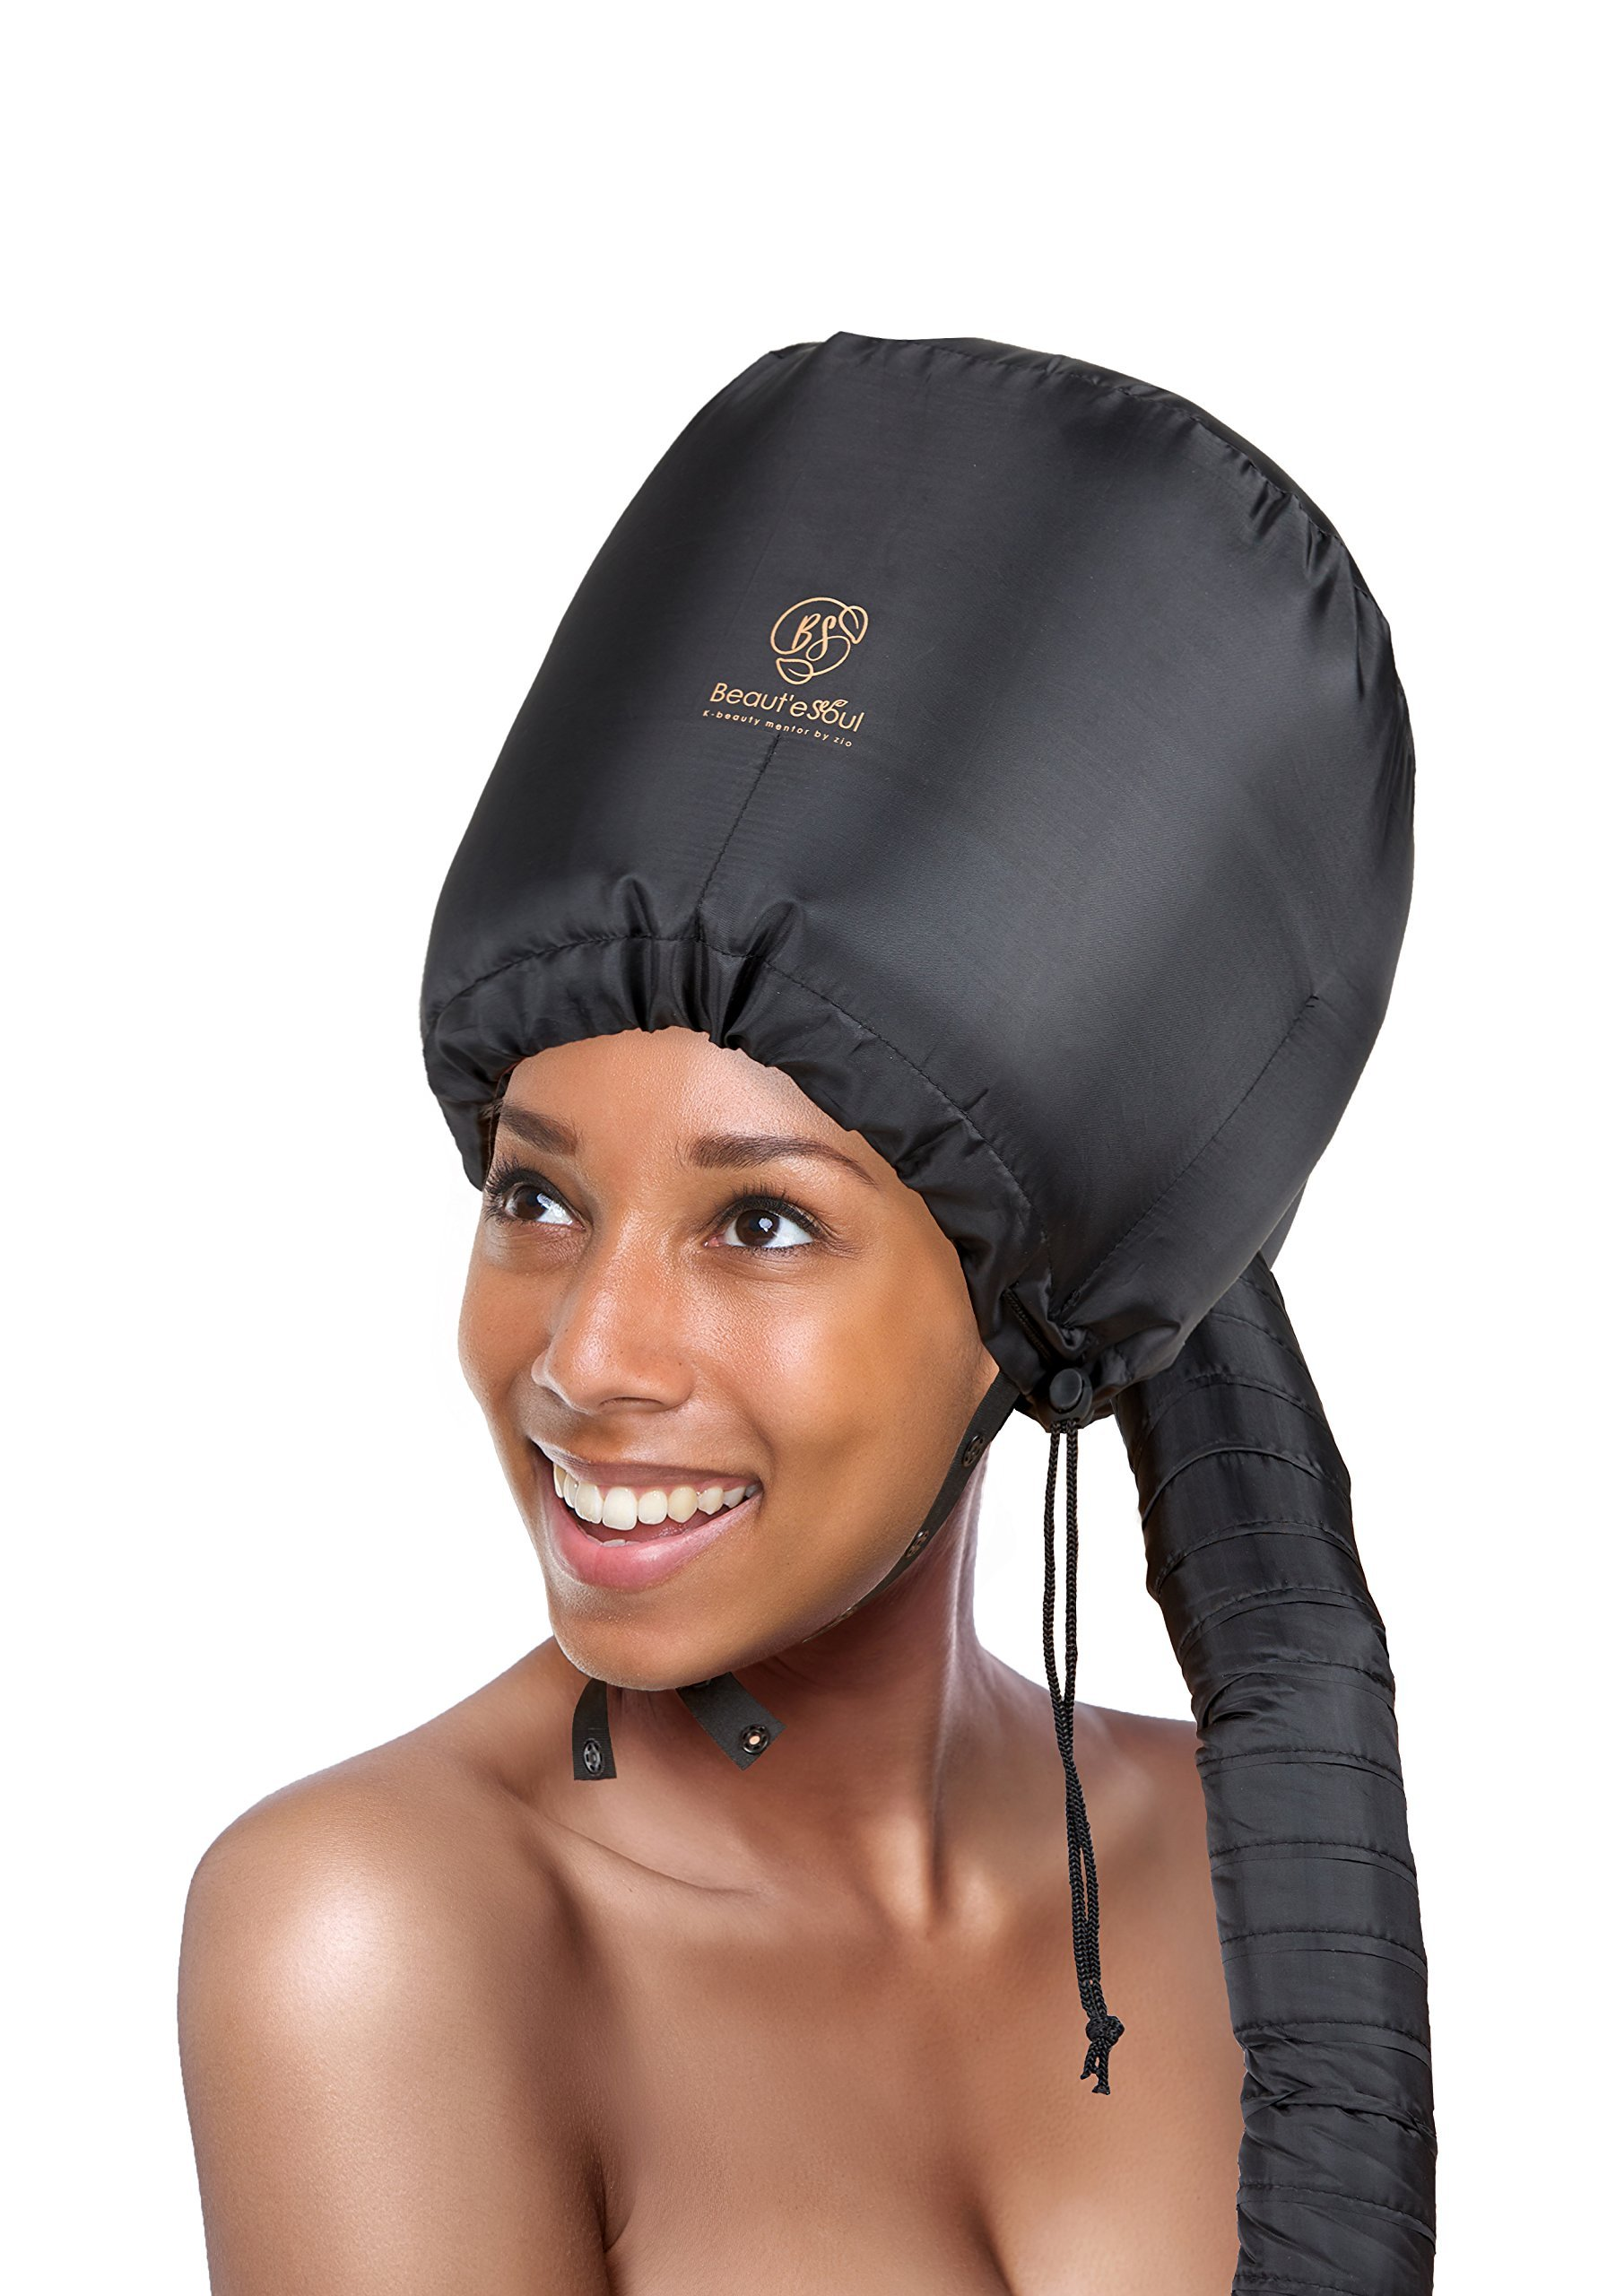 Soft Bonnet Hooded hair dryer Attachment-for Natural Curly Textured Hair Care | Drying, Styling, Curling, Deep Conditioning Mask Cap | Upgraded Soft Adjustable Large Hood Bonnet for Hand Held Dryer